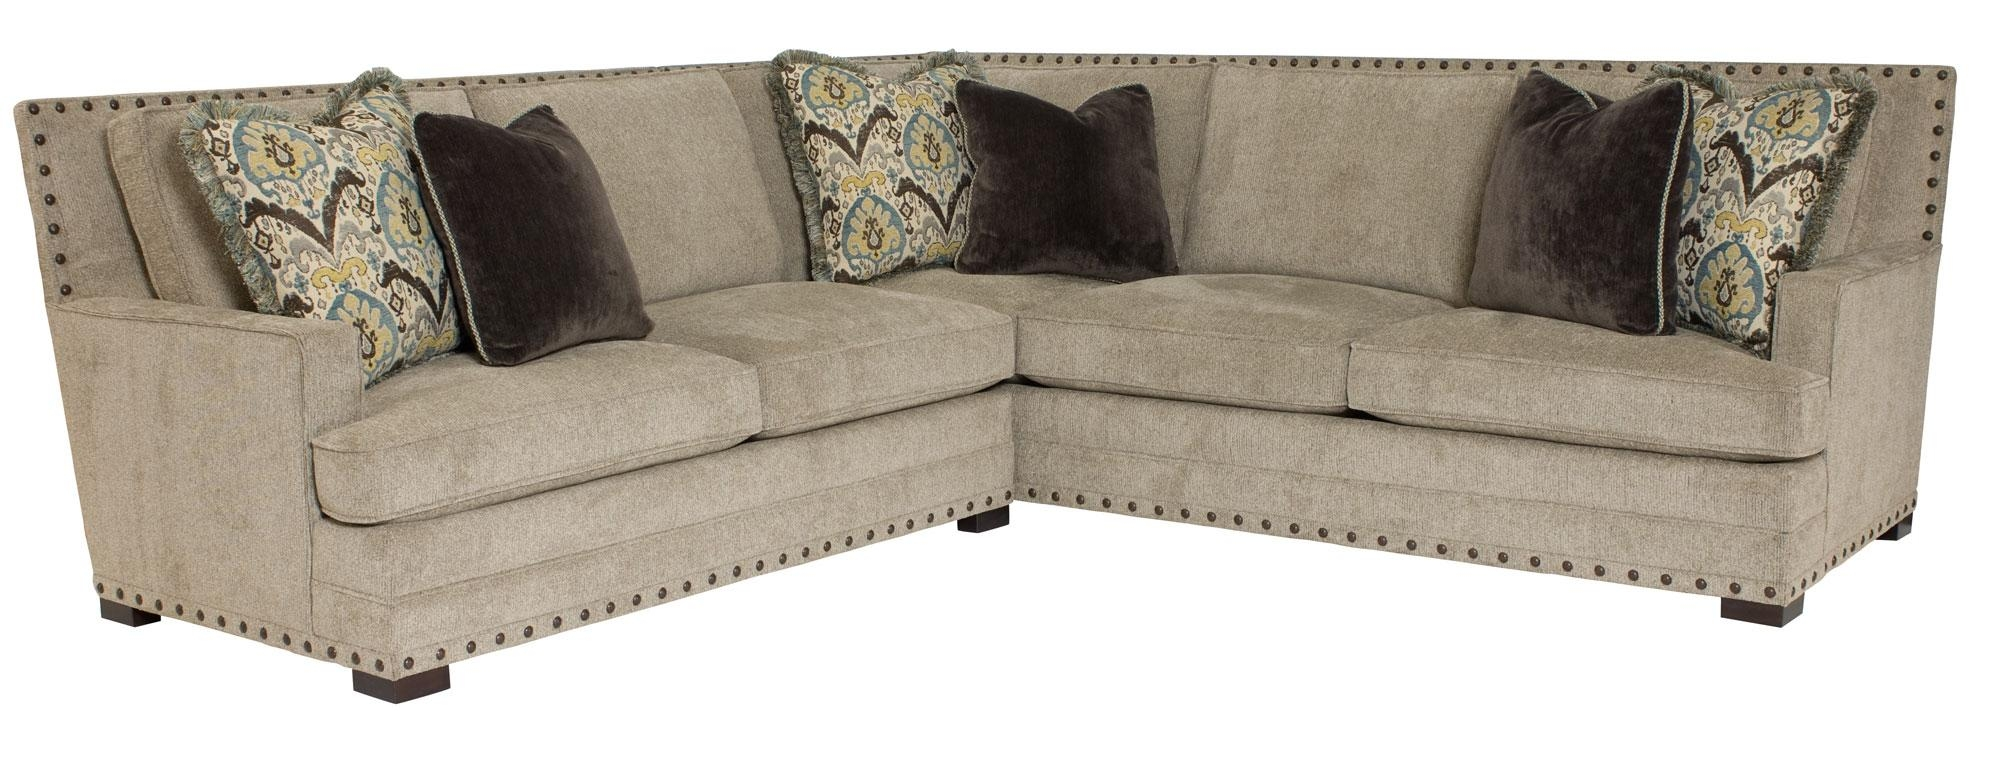 Sectionals | Bernhardt Pertaining To Bernhardt Brae Sofas (View 15 of 20)